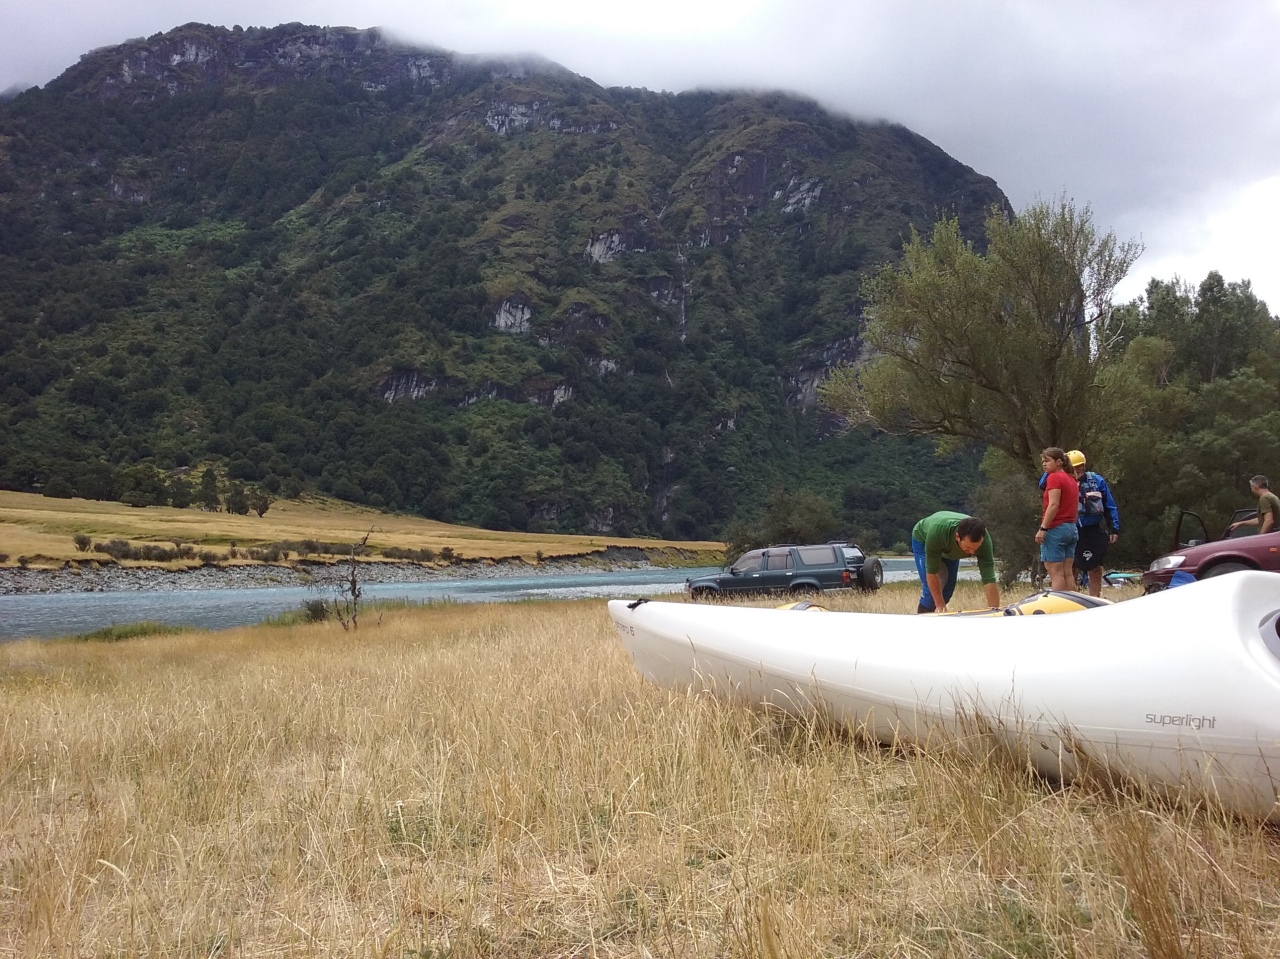 Preparing for the paddle down the Matukituki